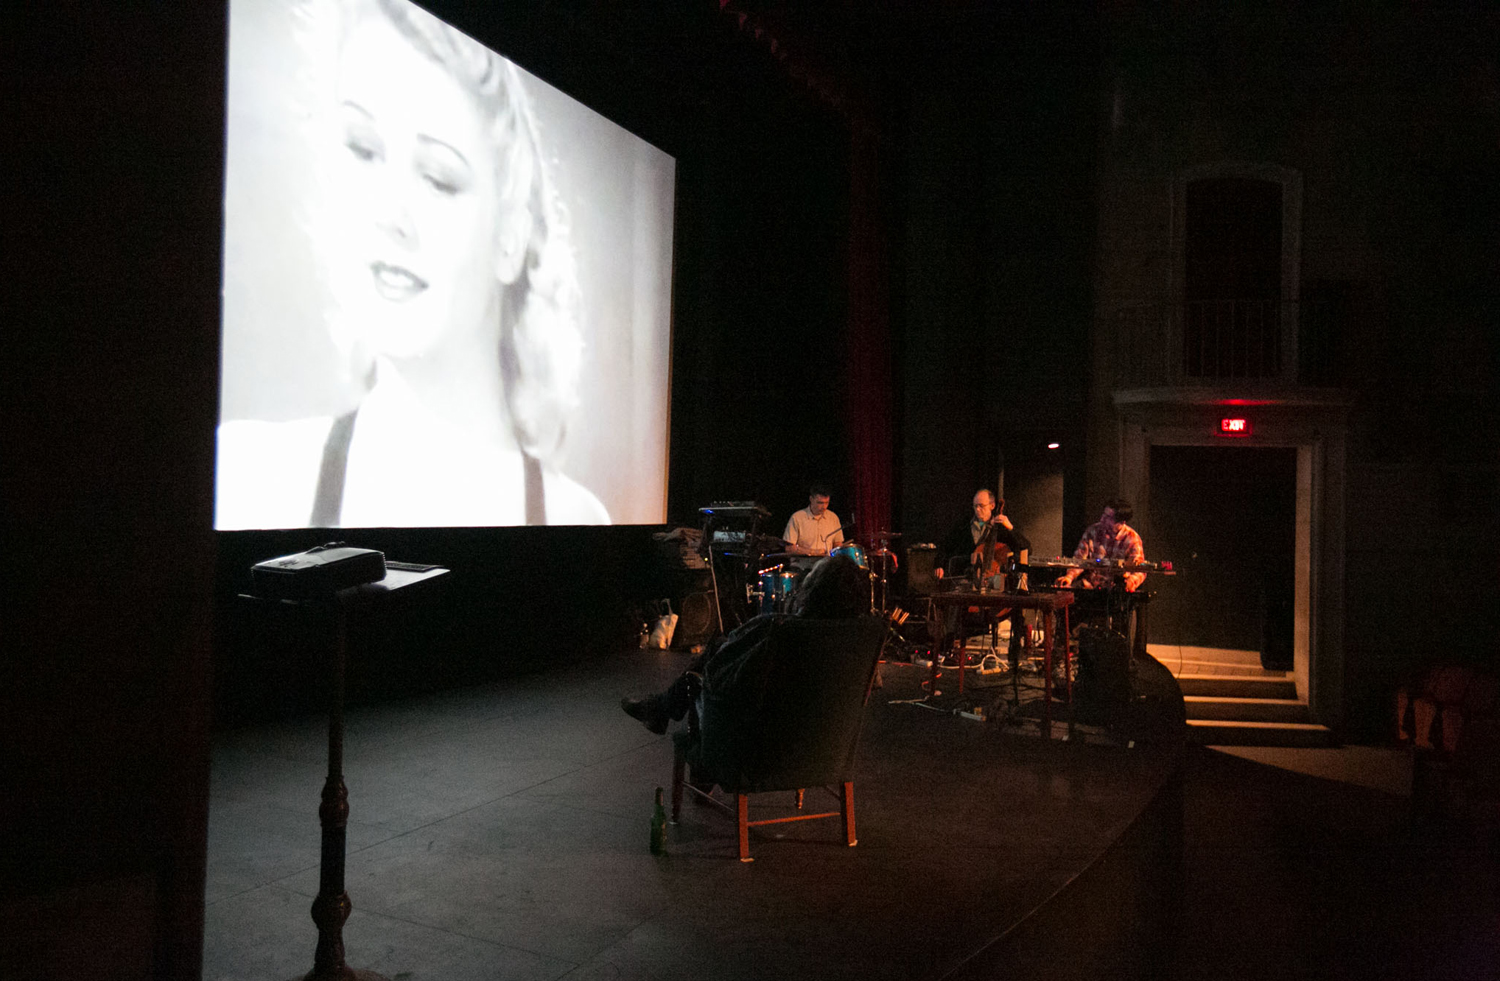 Performance at Cornell Cinema, 2014. All photos on this page by Ed Dittenhoefer.